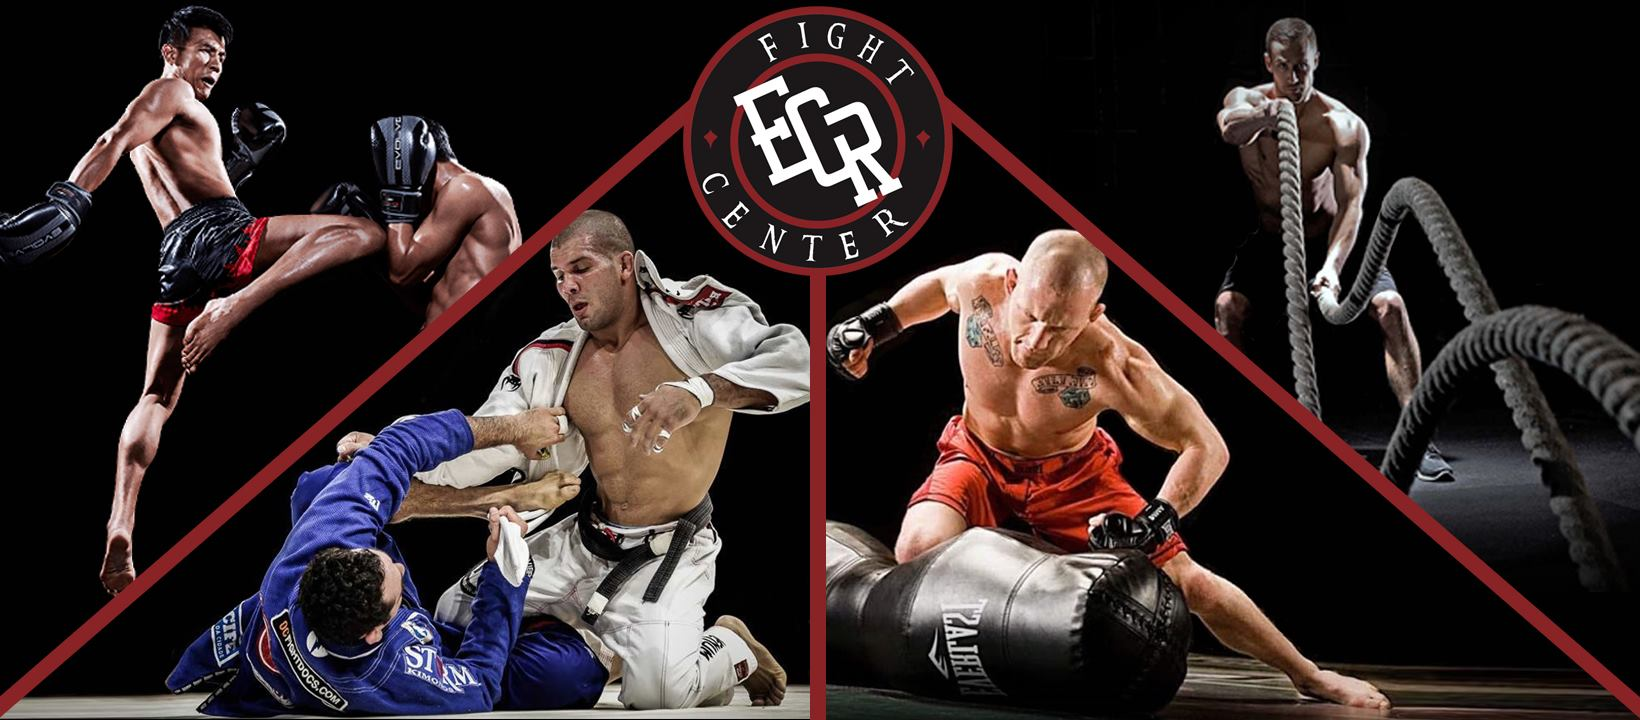 ECR Fight Center  cover profesional de MMA en Cancún